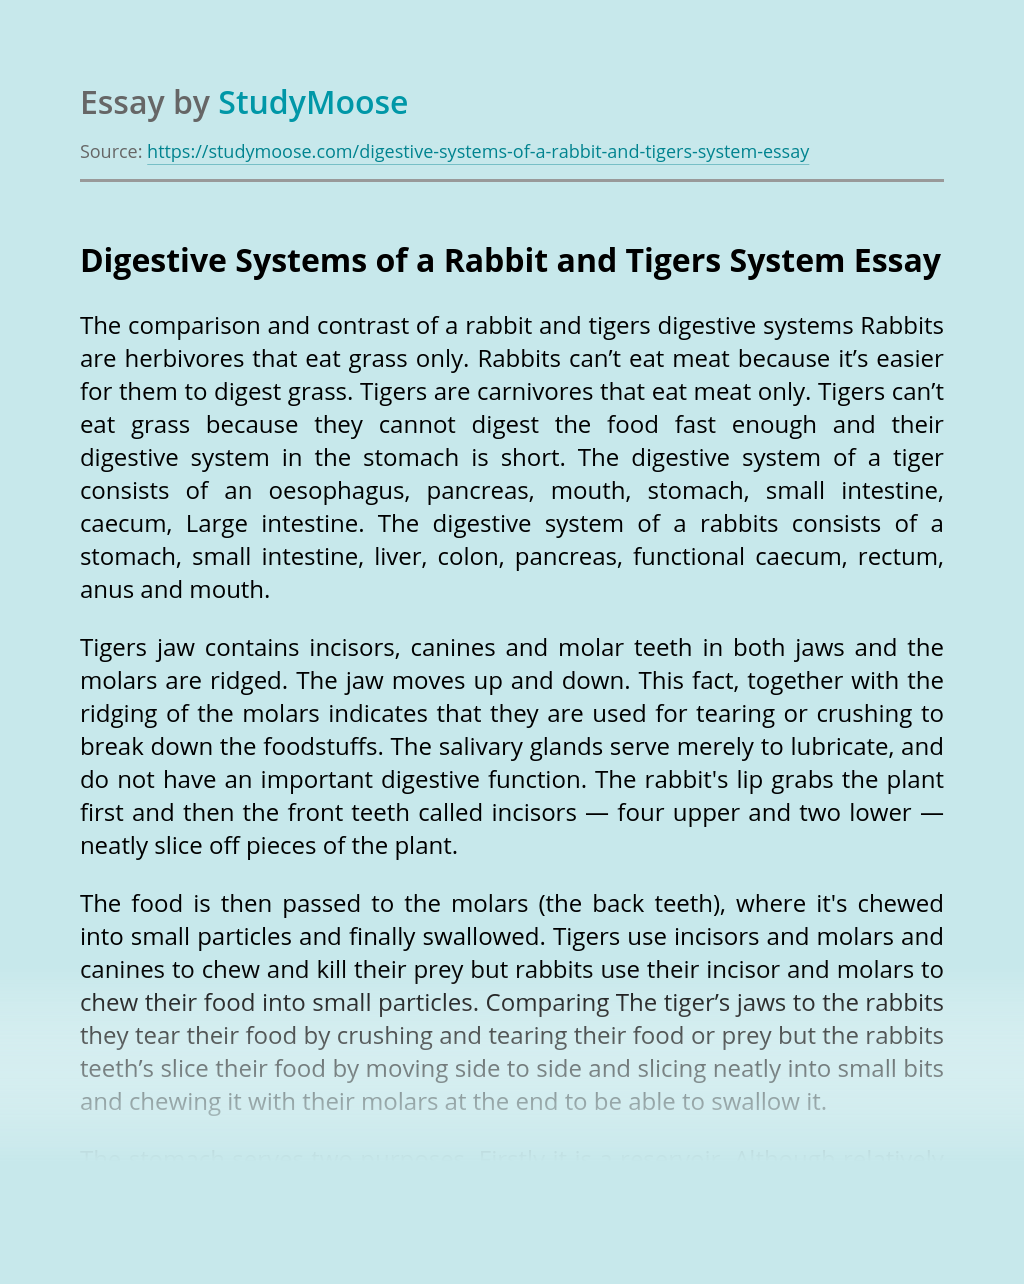 Digestive Systems of a Rabbit and Tigers System